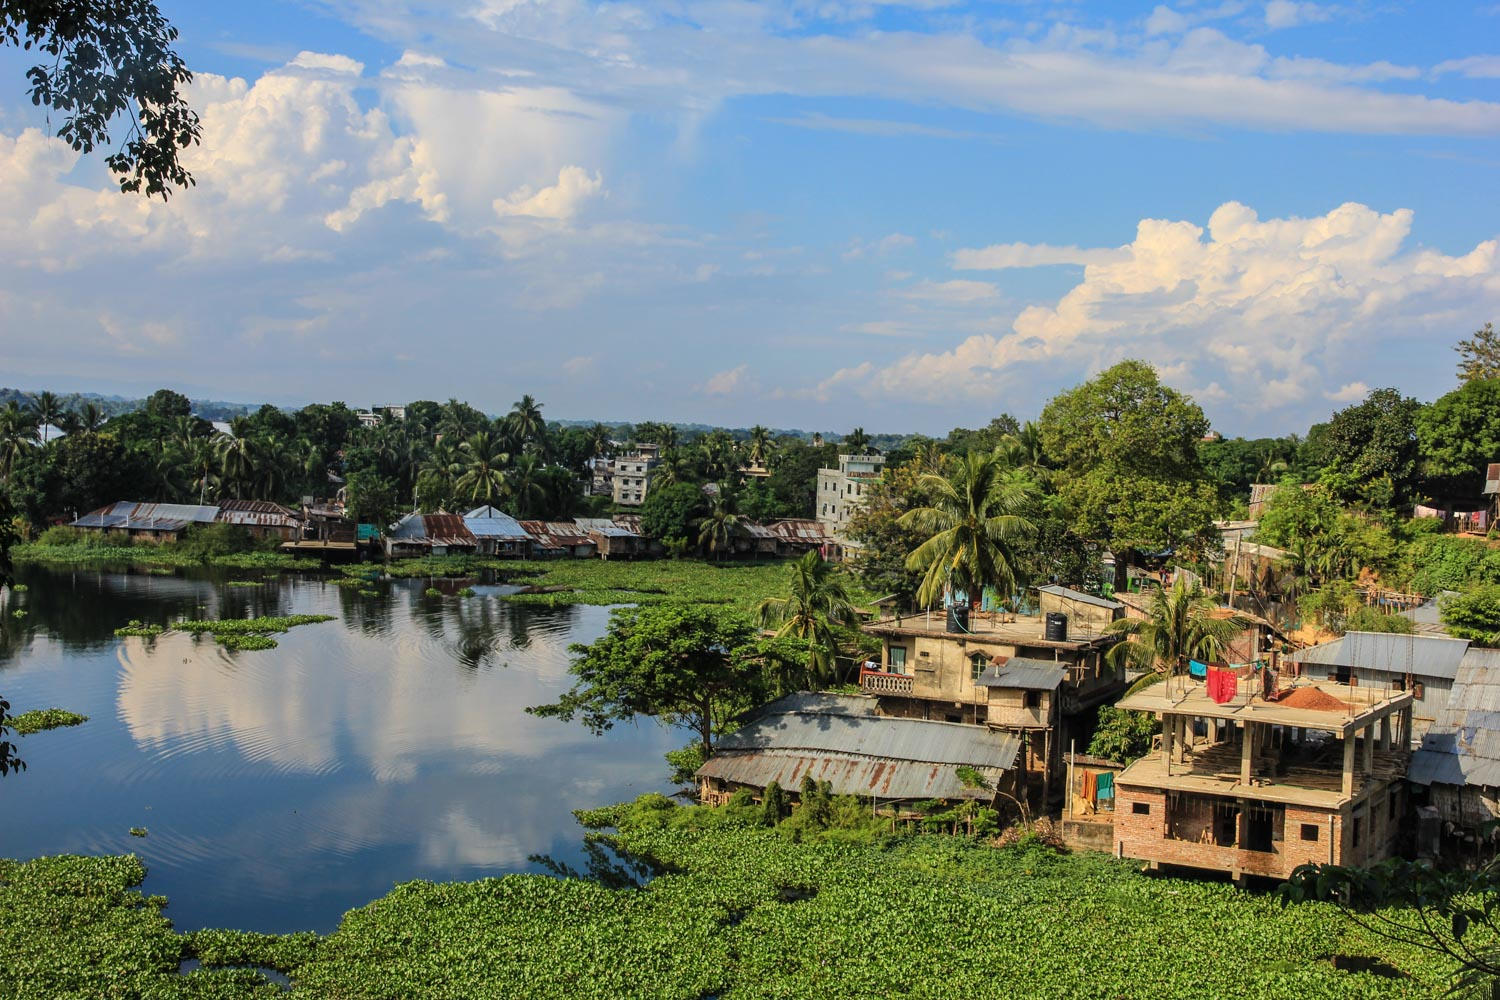 My view from my hotelroom in Rangamati